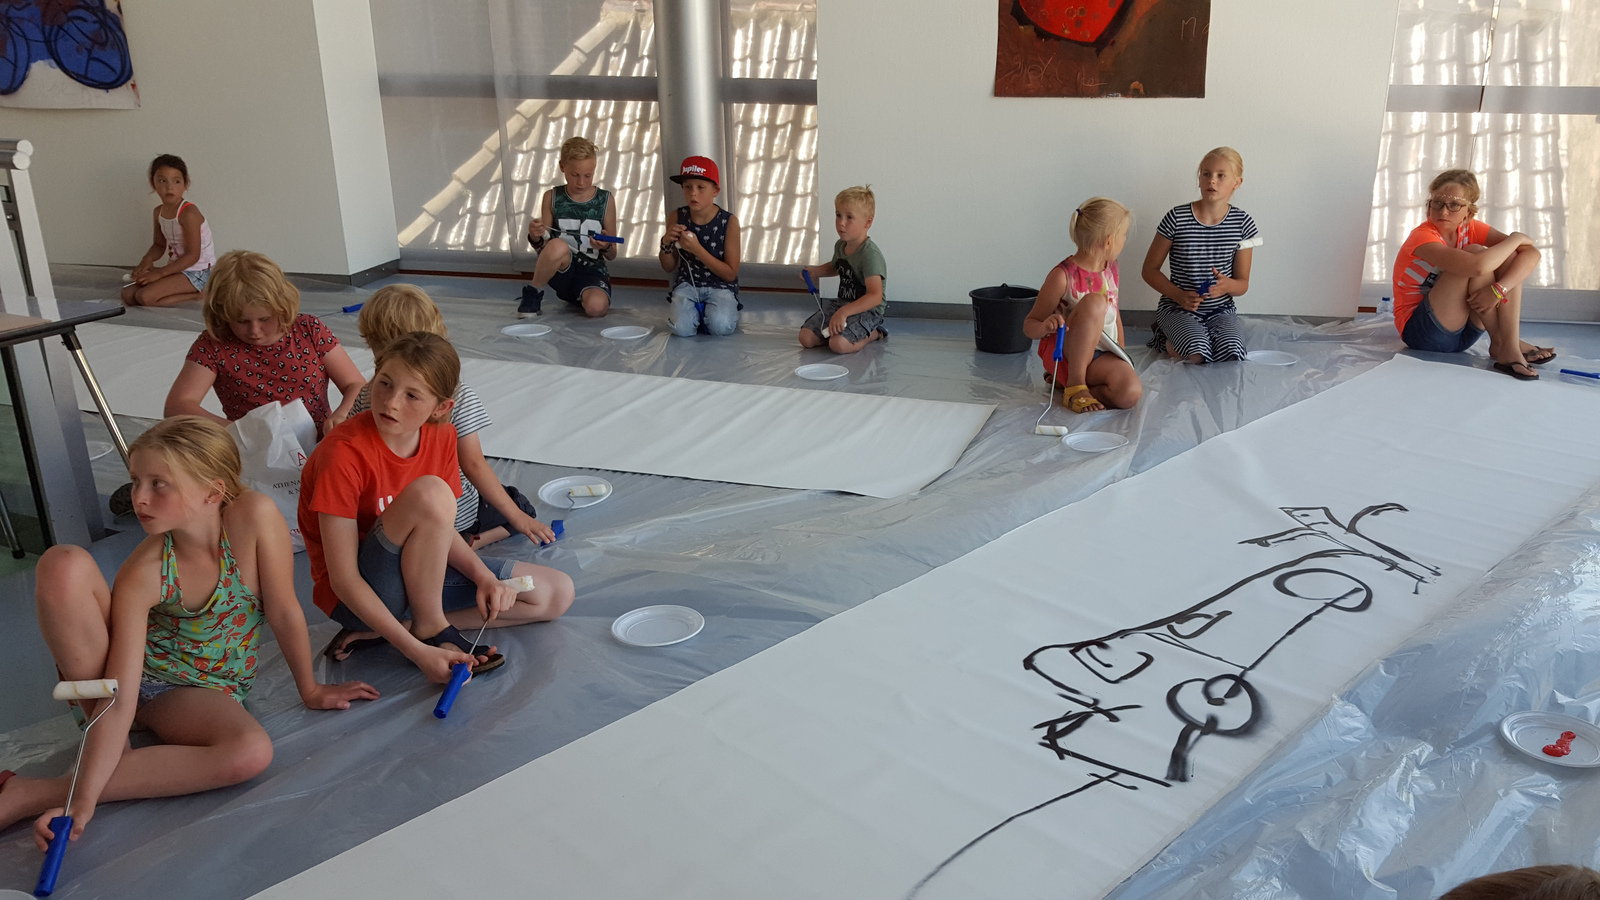 Photo of Live action painting à la Brood in Stedelijk Museum Zwolle